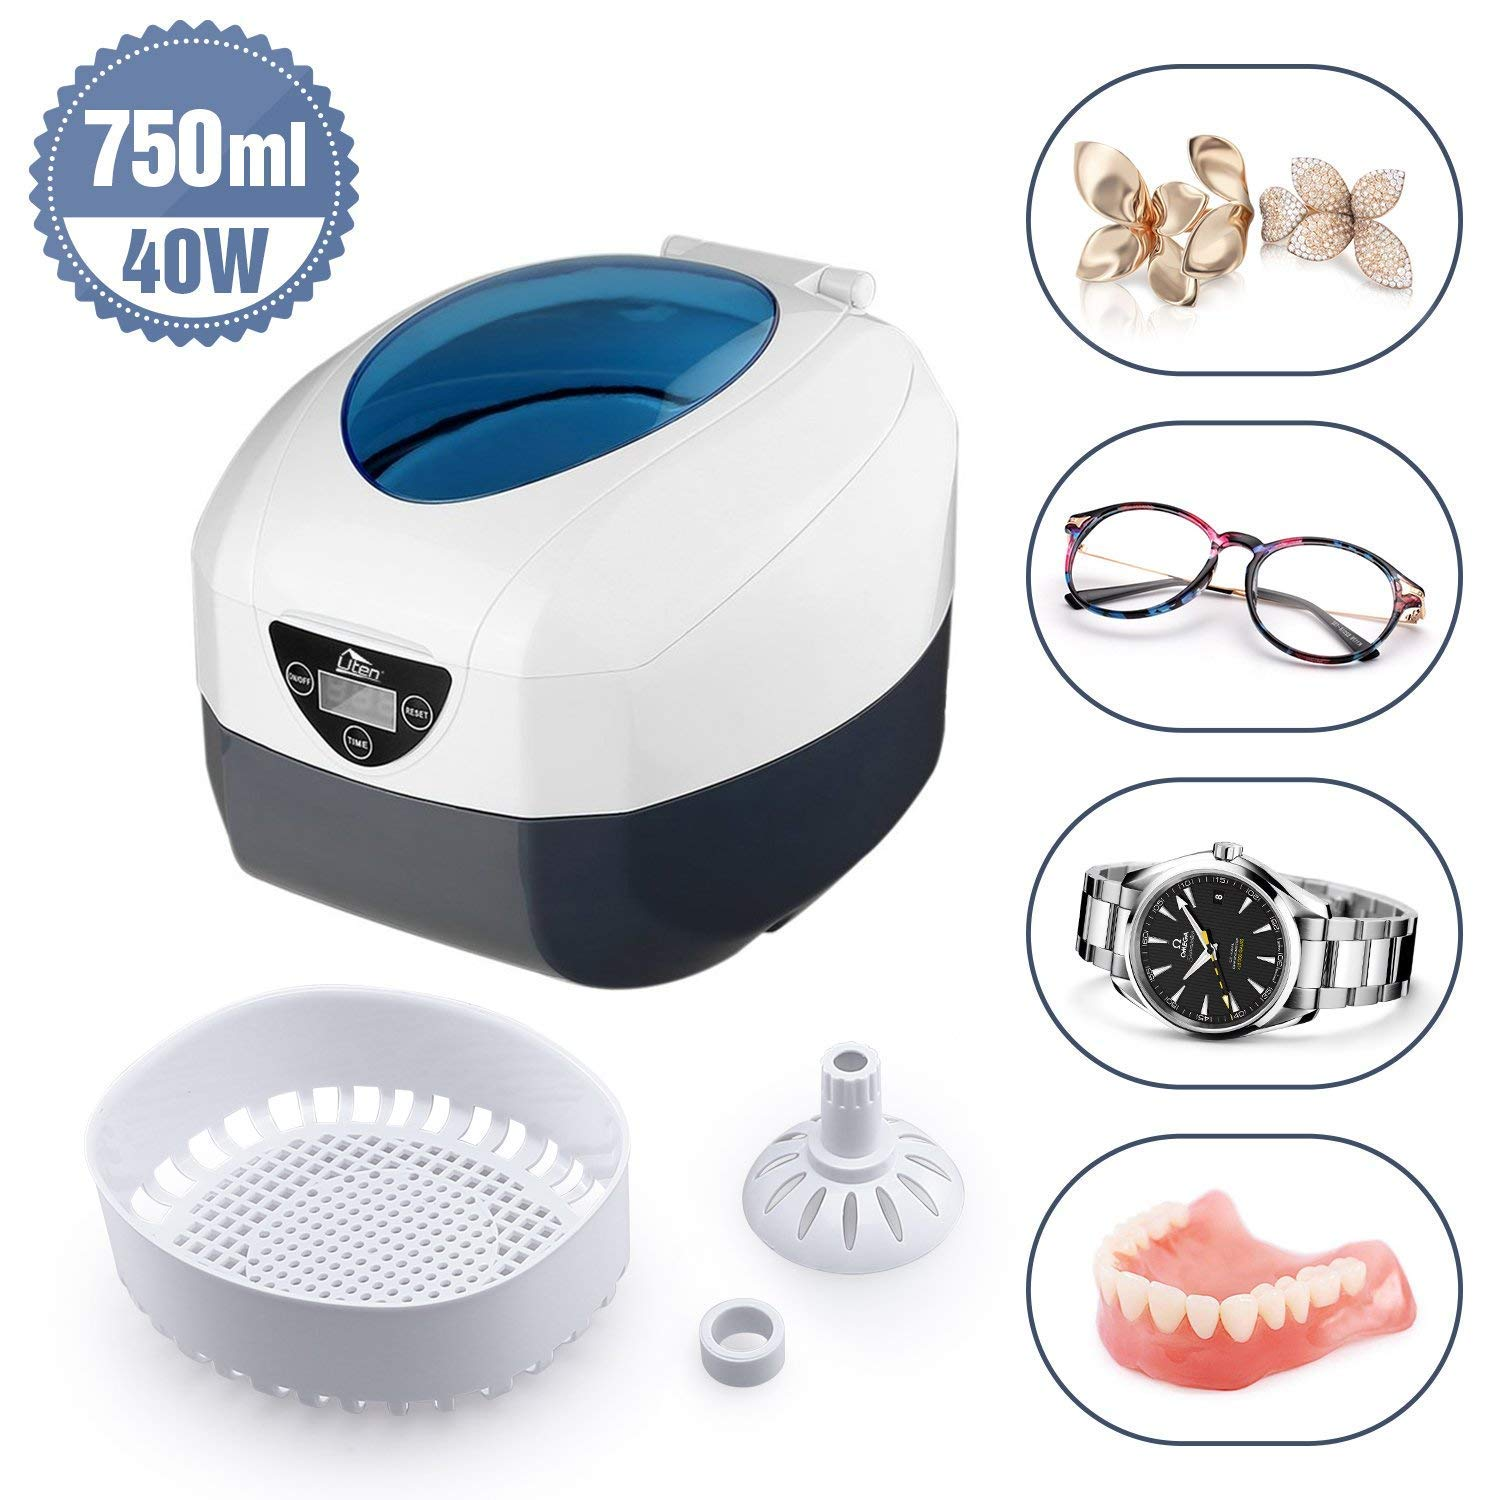 Uten Ultrasonic Cleaner - 0.75L Low Noise Wash Machine for Cleaning Eyeglasses, Jewelry, Watches, Razors, Dentures Combs by Uten